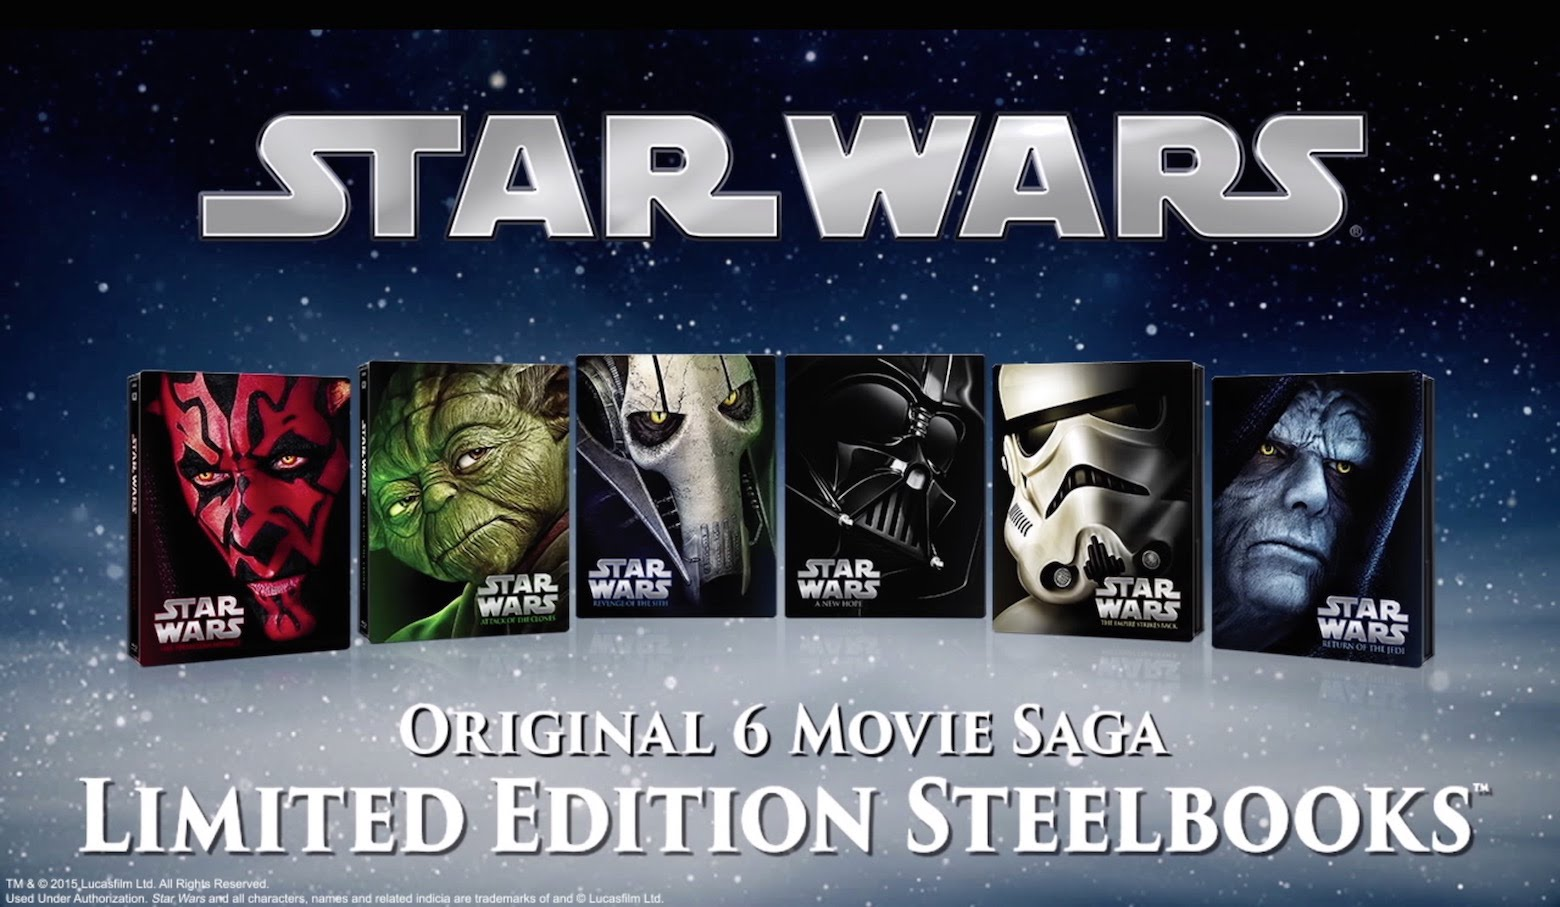 Stars wars blu ray collection - The second city theater